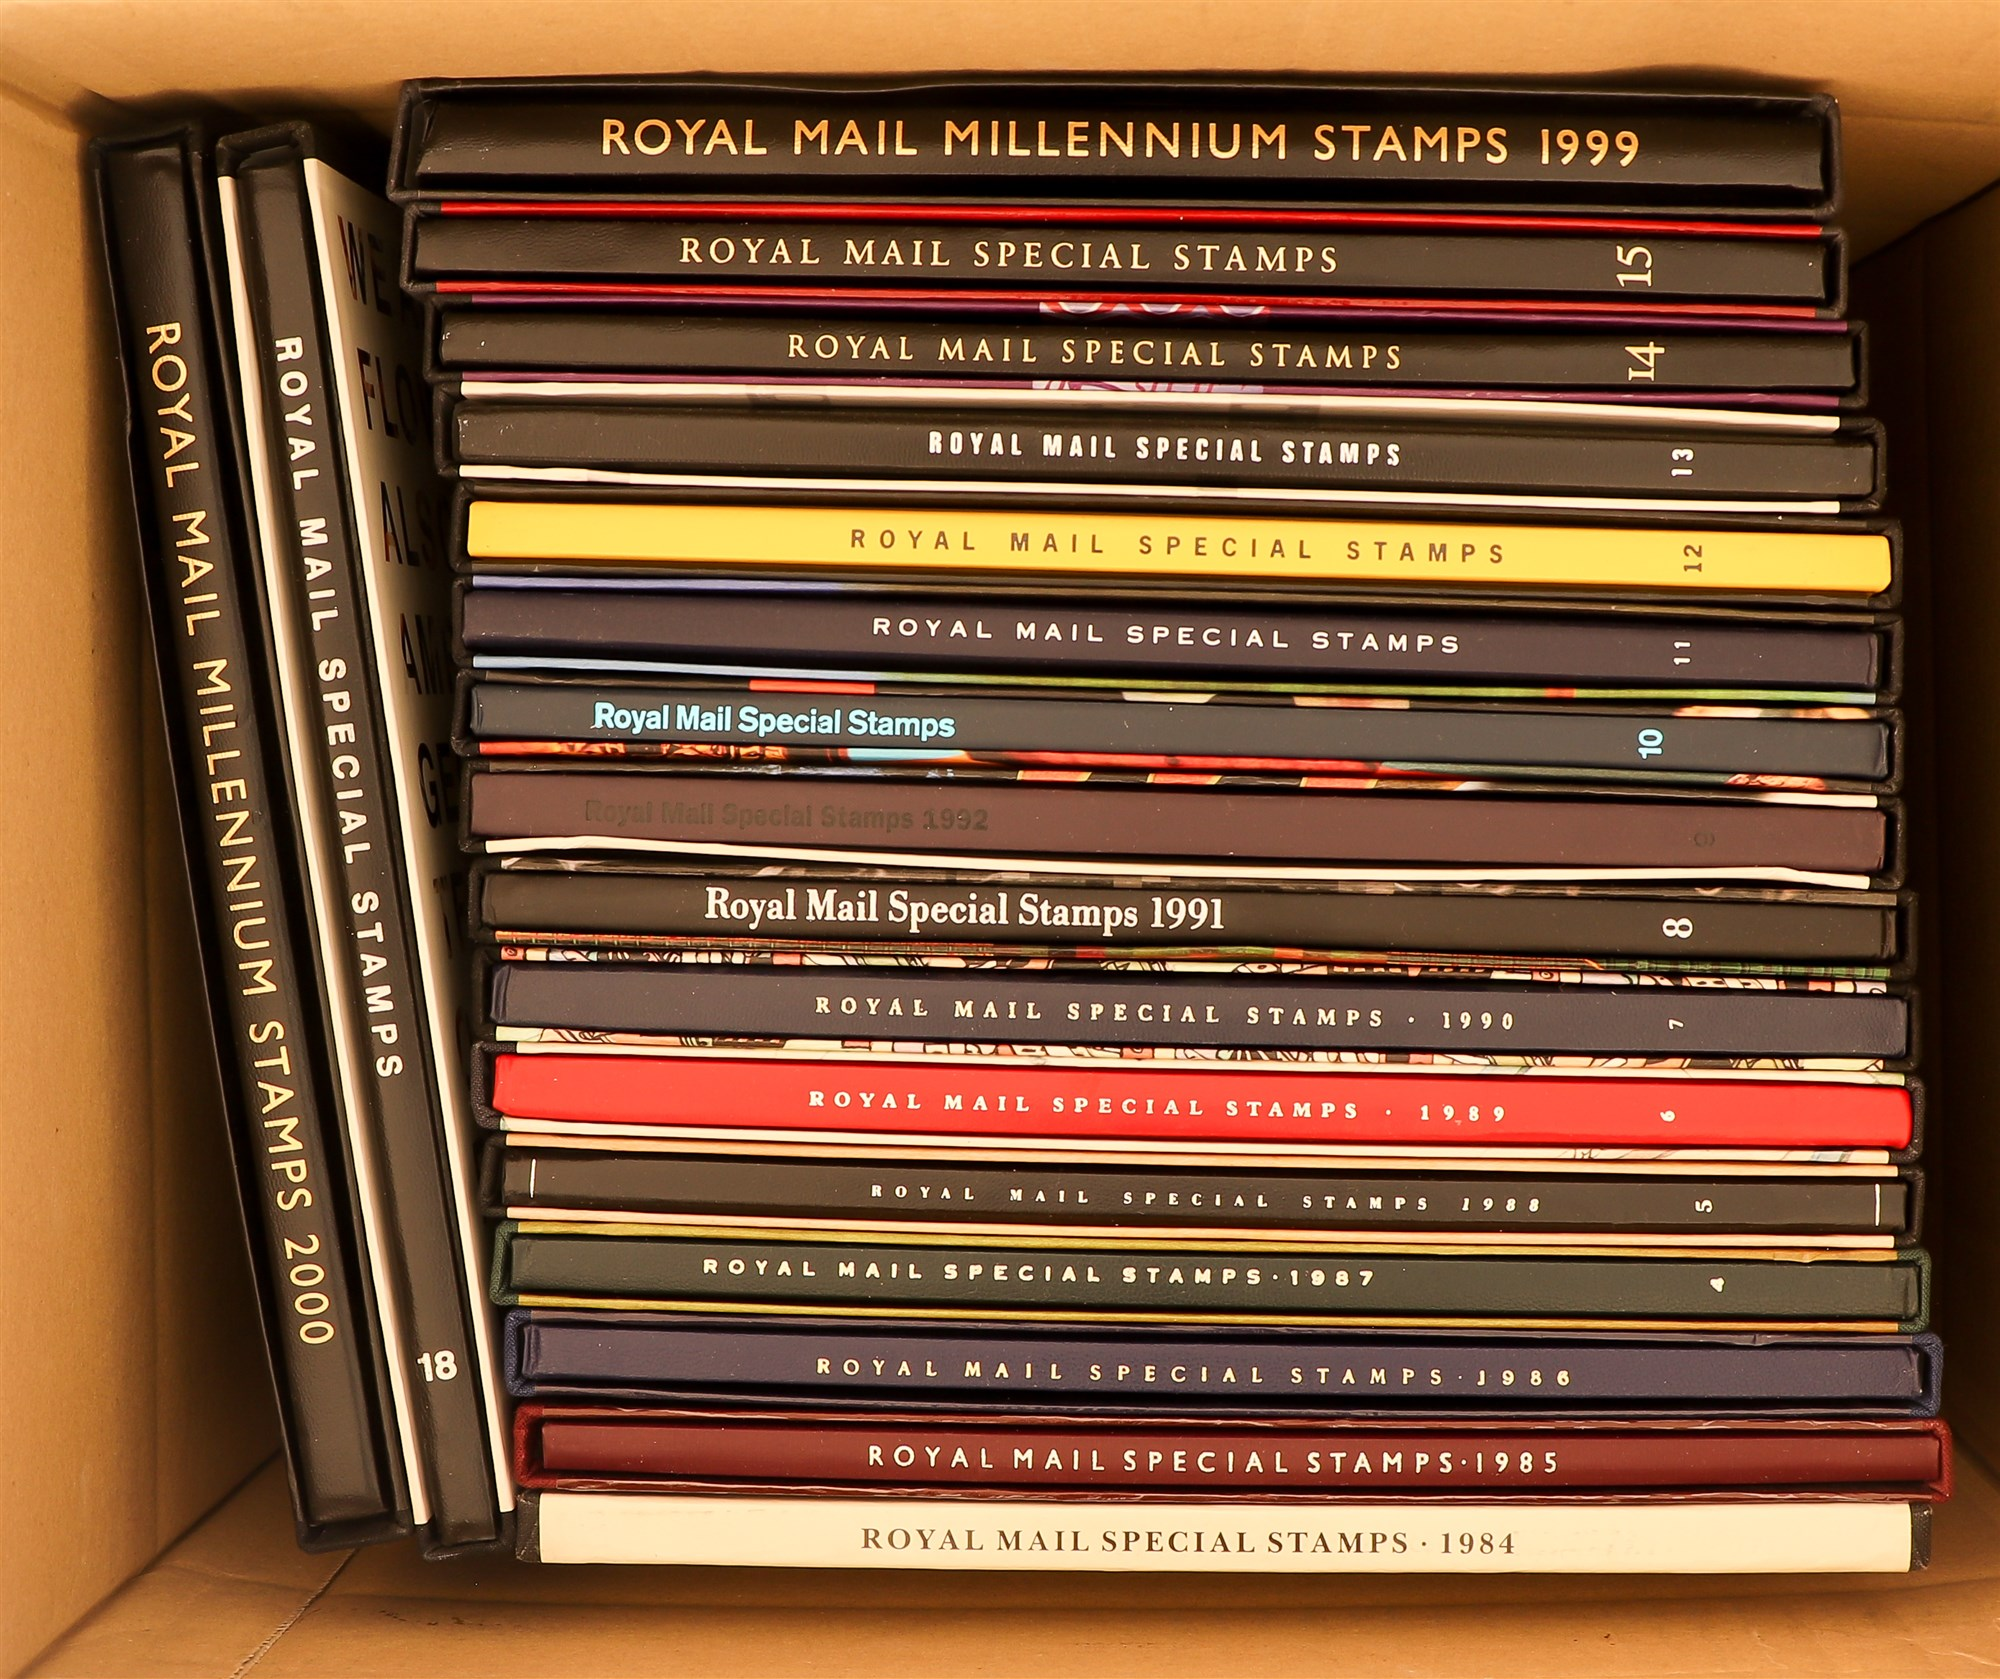 GB.ELIZABETH II YEAR BOOKS 1984 - 2001. Complete run of 18 books from number 1 (1984) to number